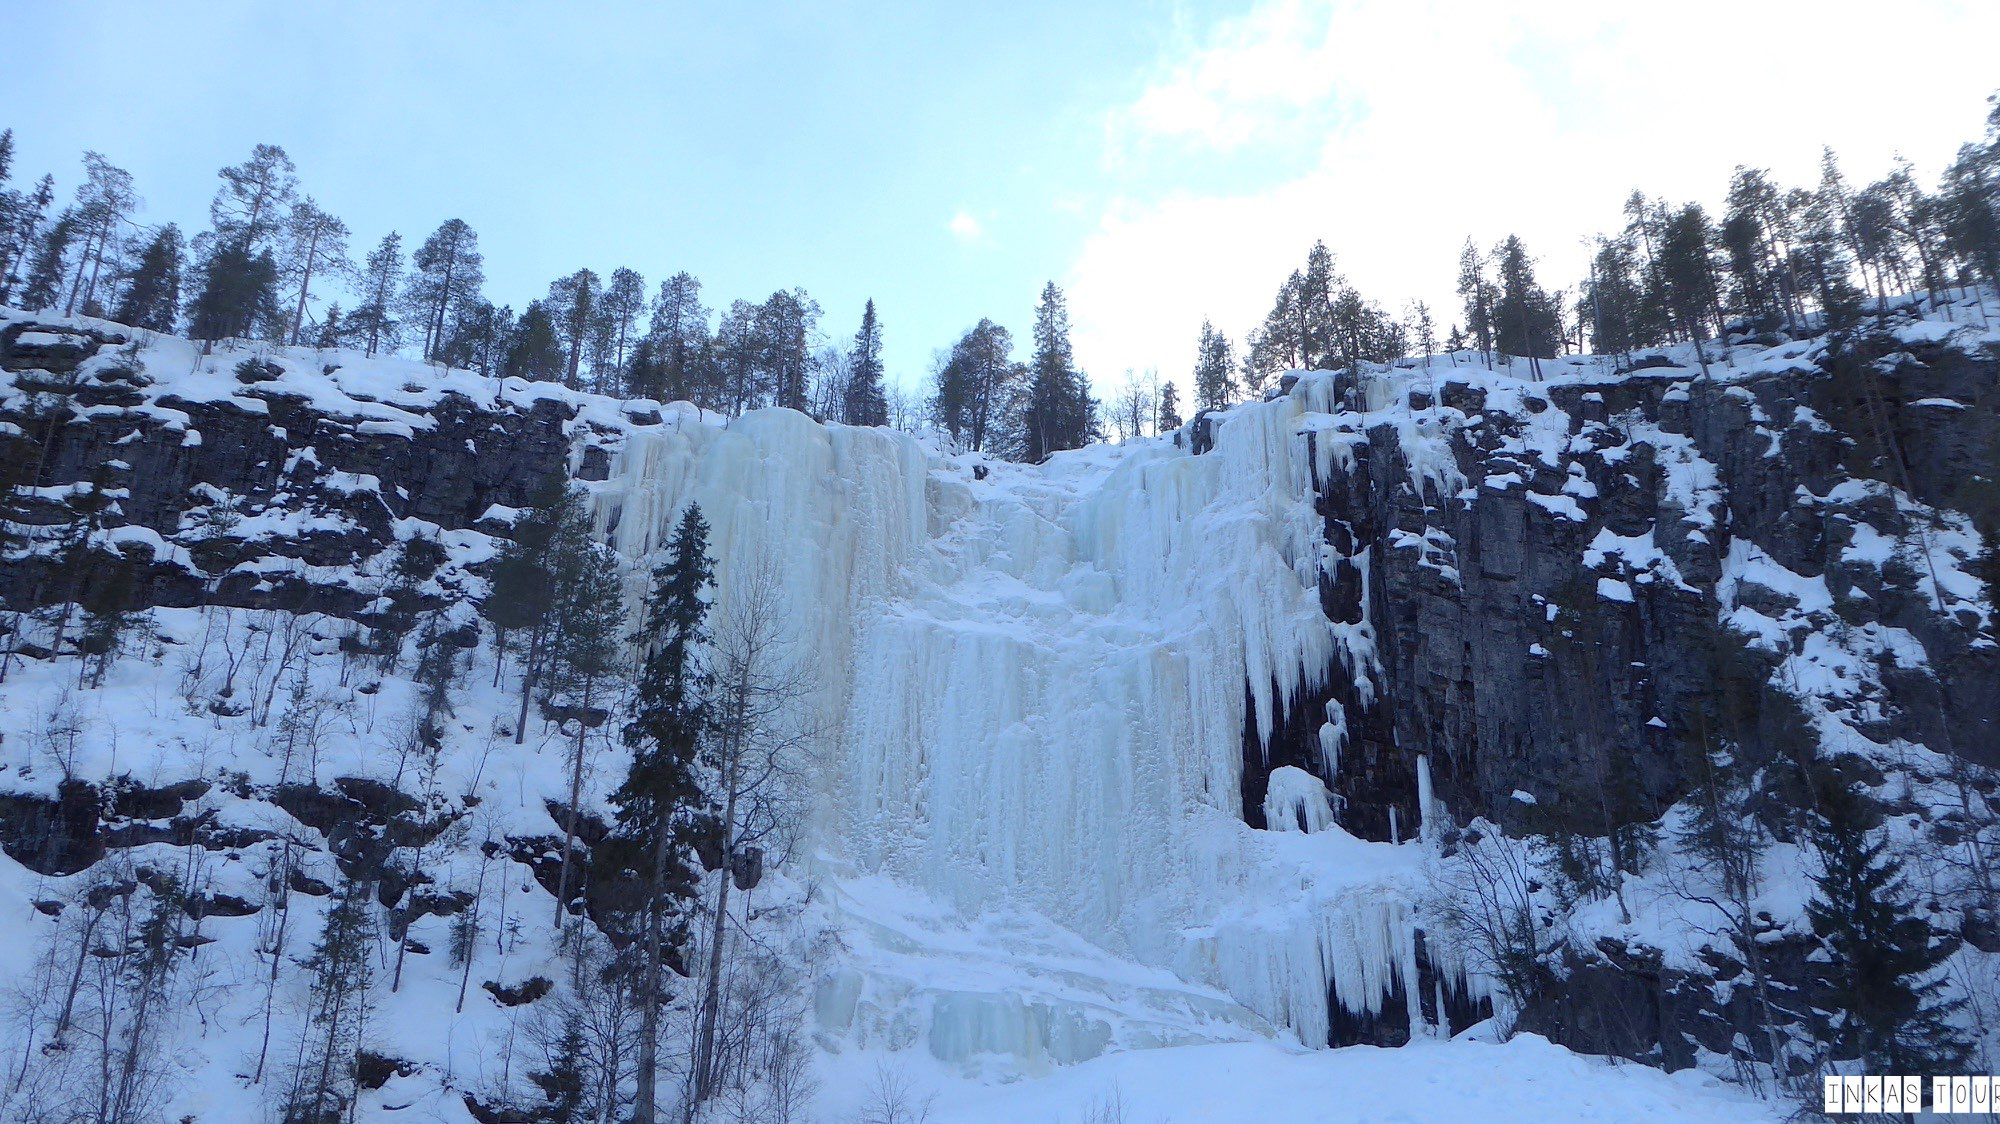 Korouma National Park Frozen Waterfalls Finland Vacation Inkas Tour Photography Salad around the World Travelblog